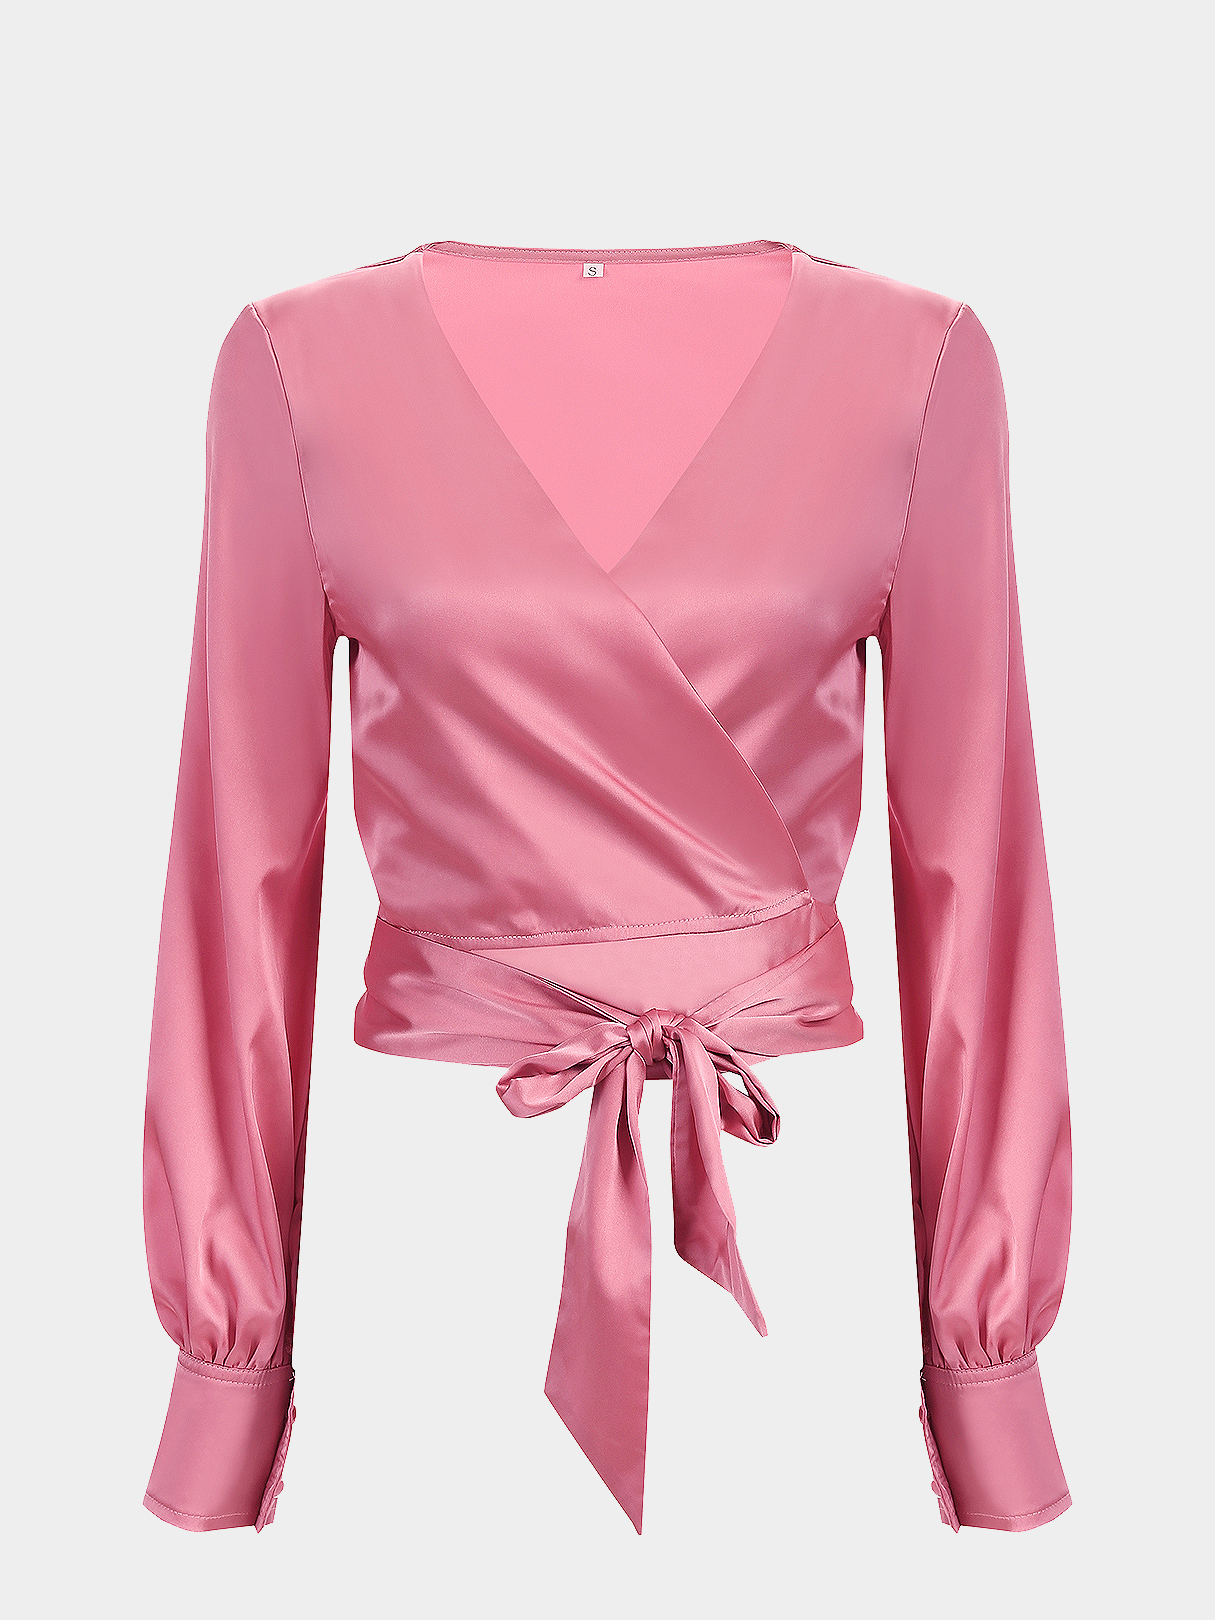 4d3b5ade768 V-neck Wrap Front Top with Long Sleeves - US$13.95 -YOINS